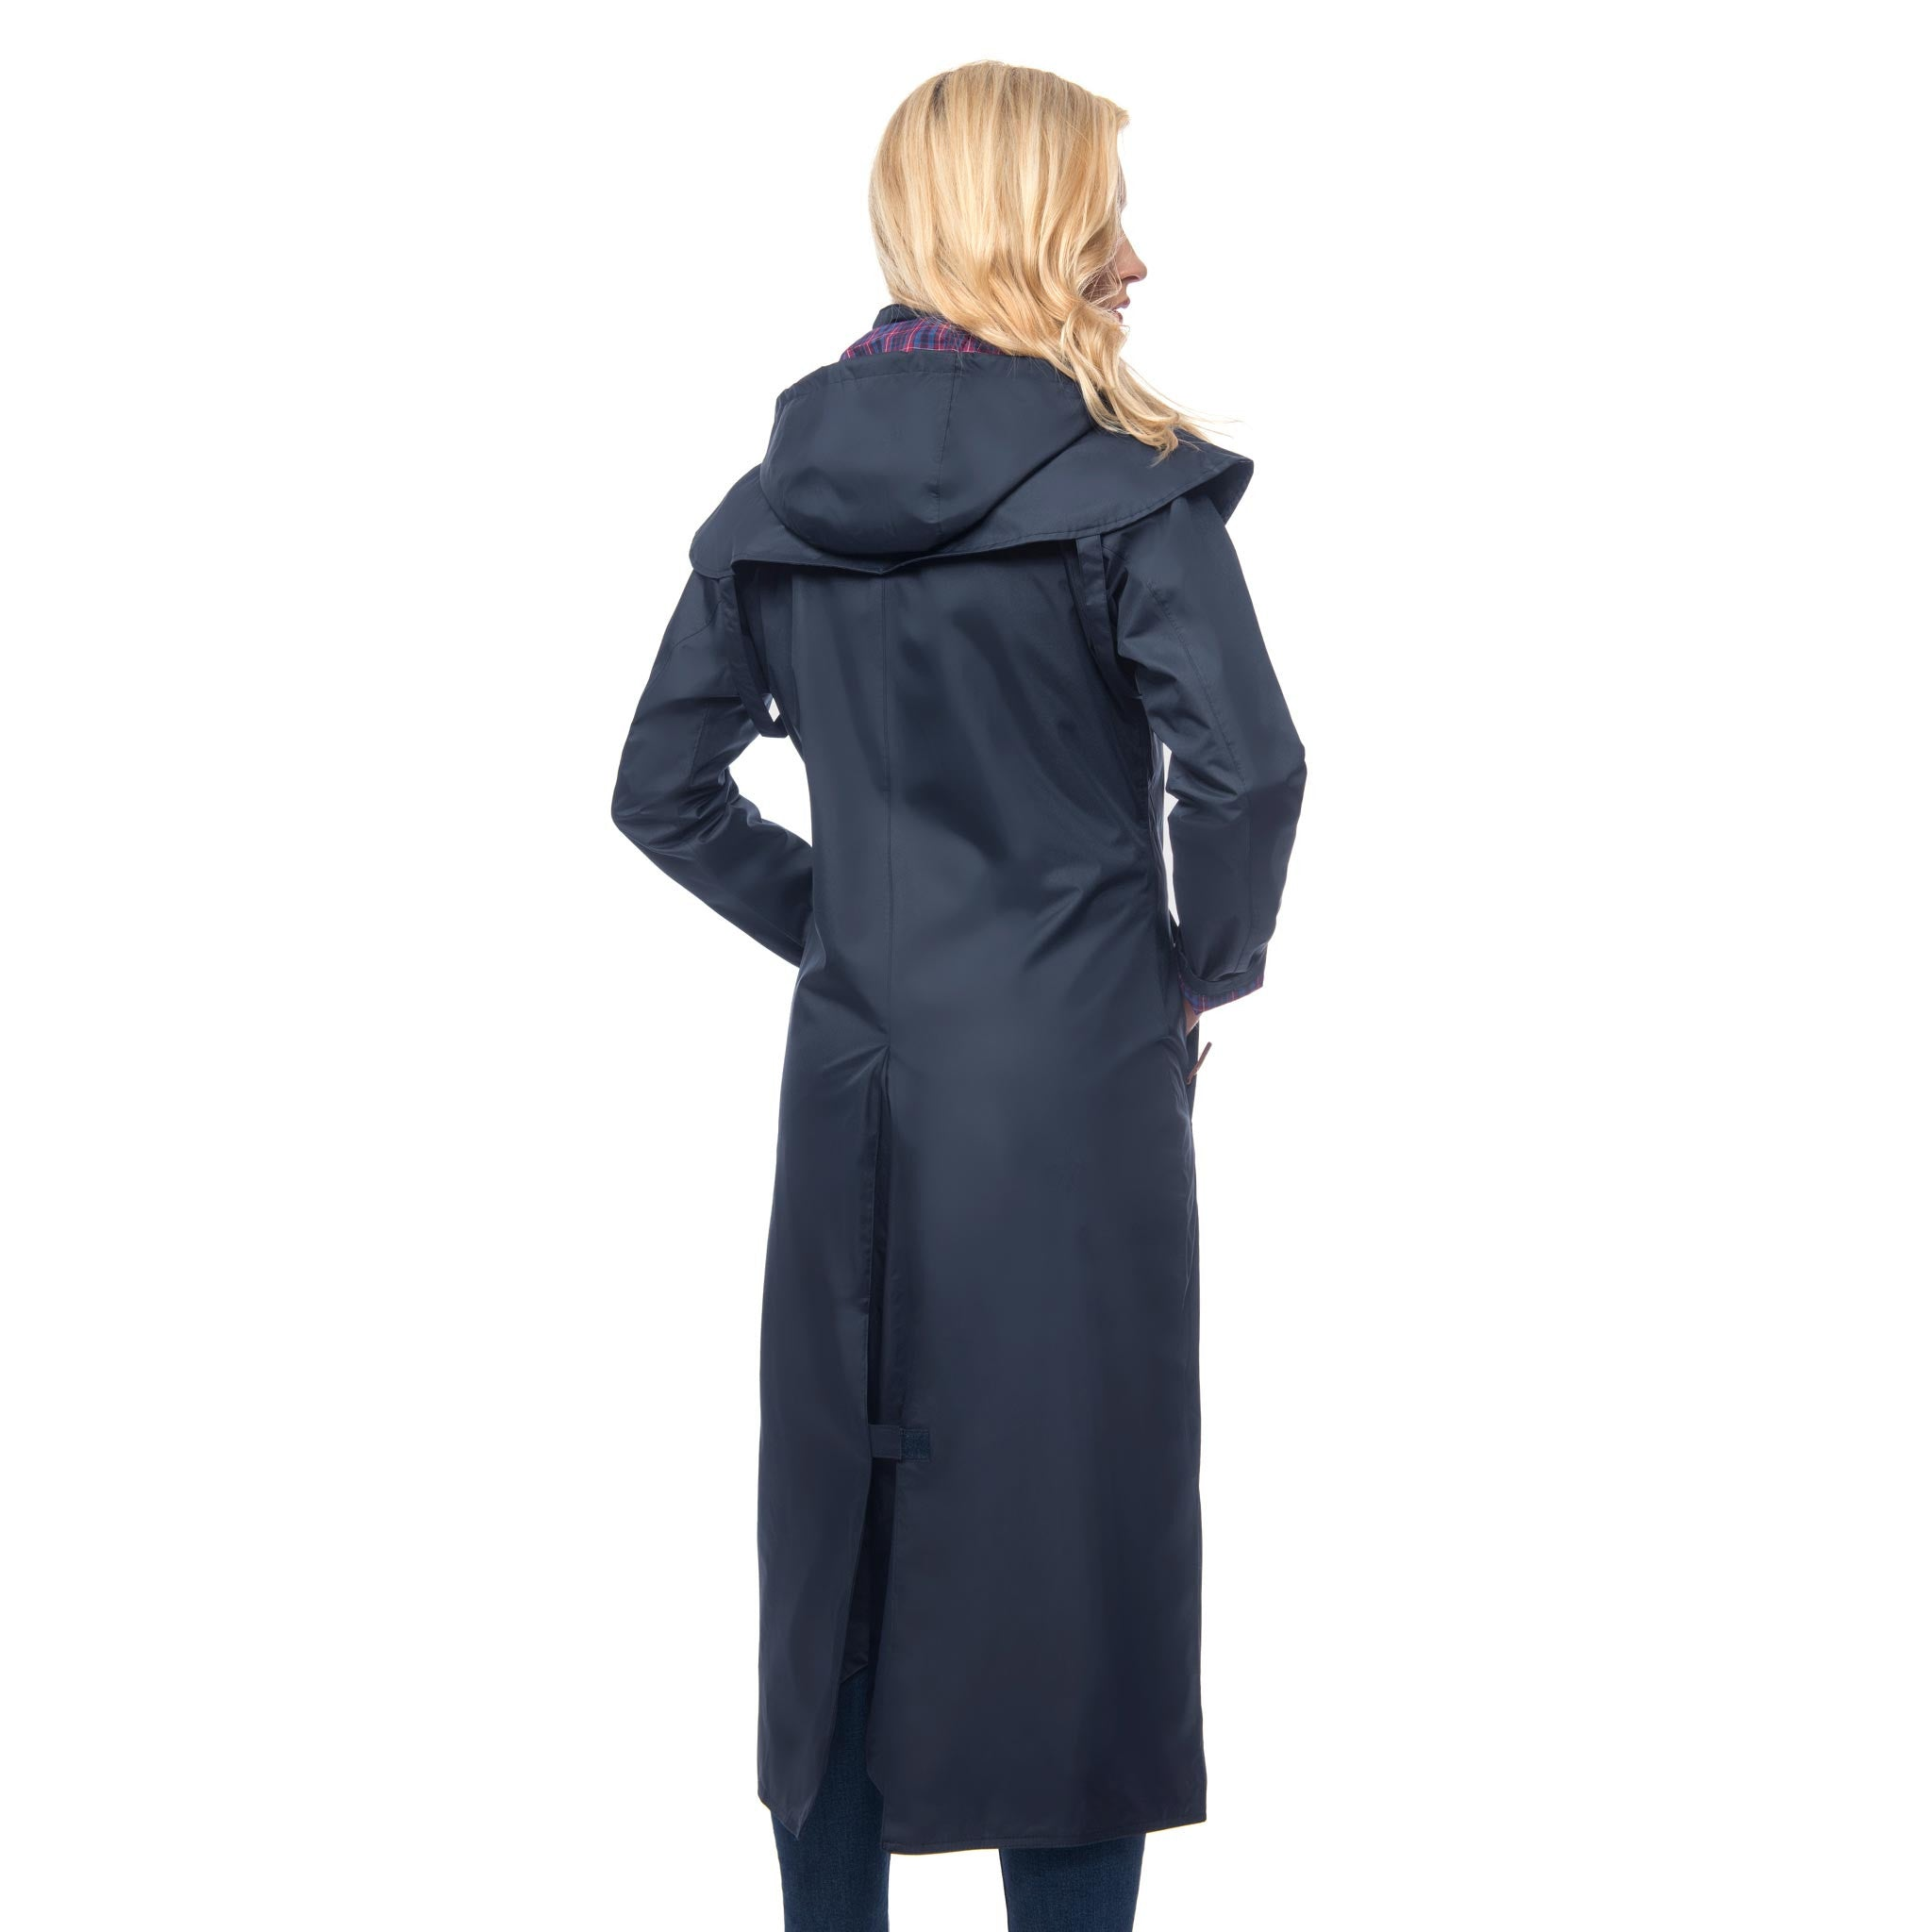 Lighthouse Womens Outback Full Length Waterproof Raincoat in Navy. Zipped and buttoned. Rear view showing back vent.